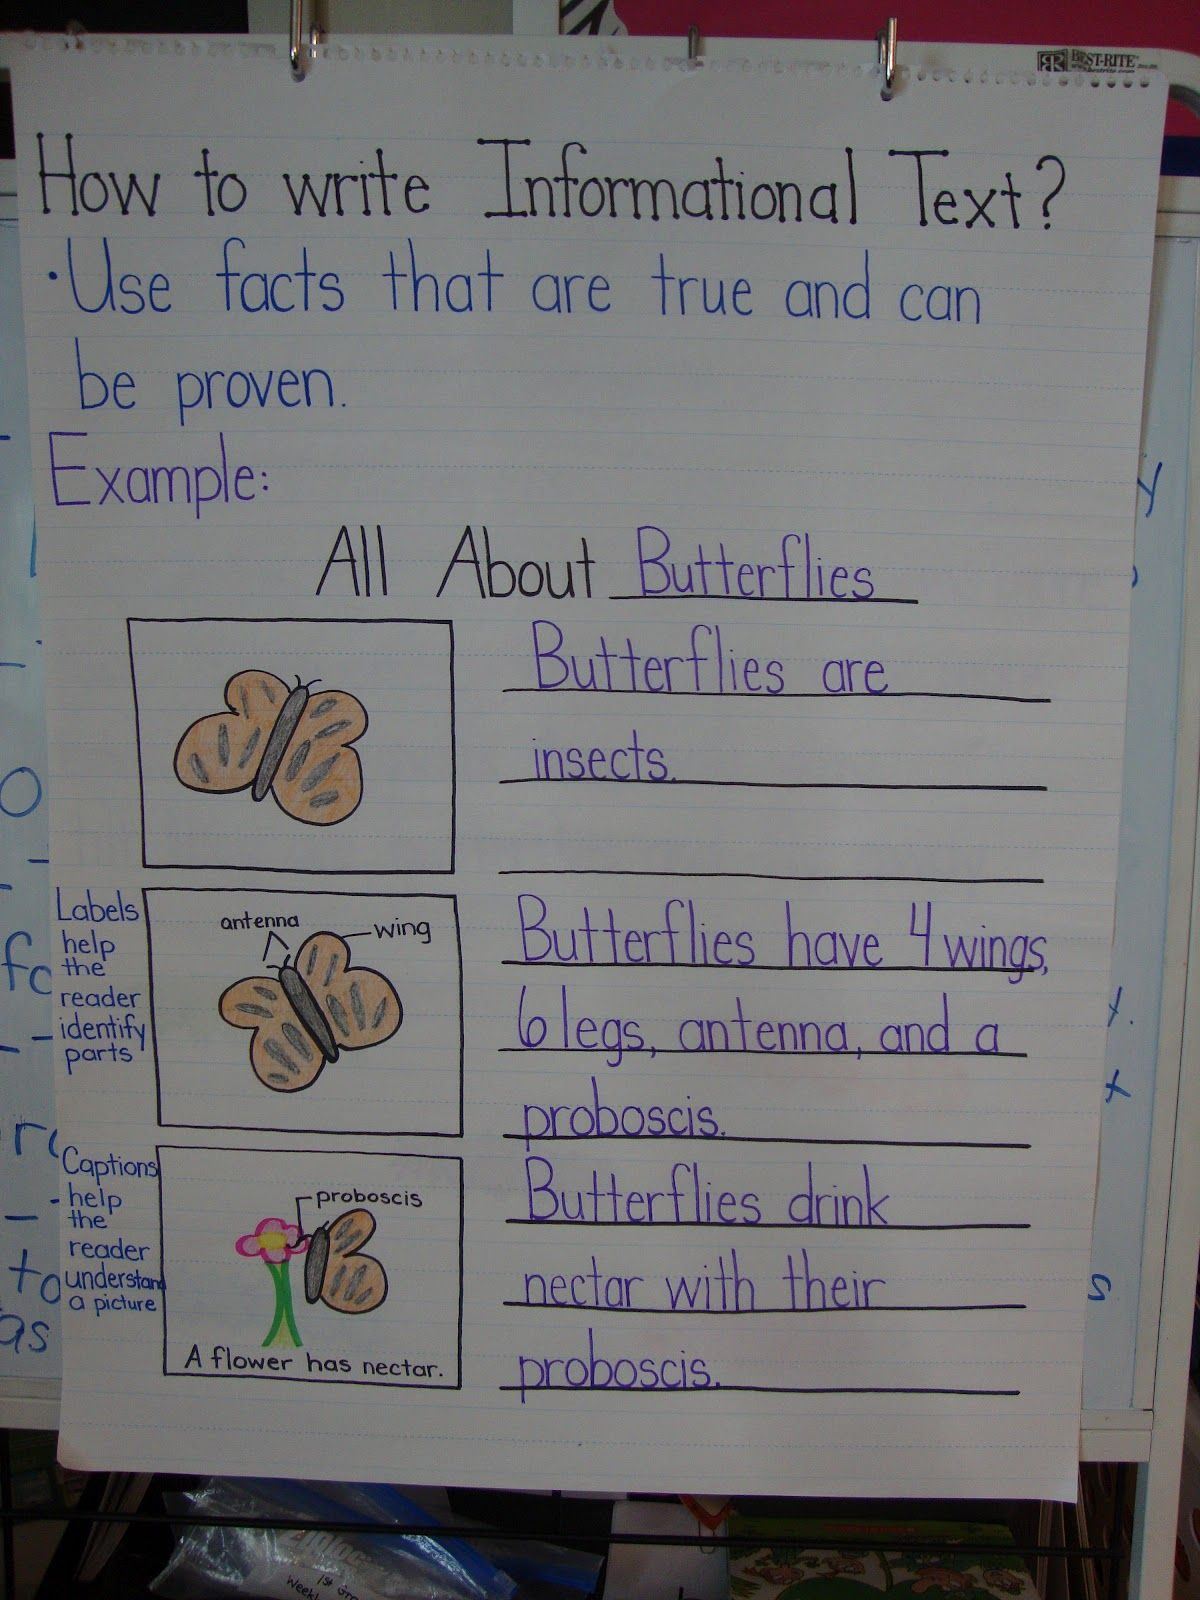 we write and read mostly informational text in science